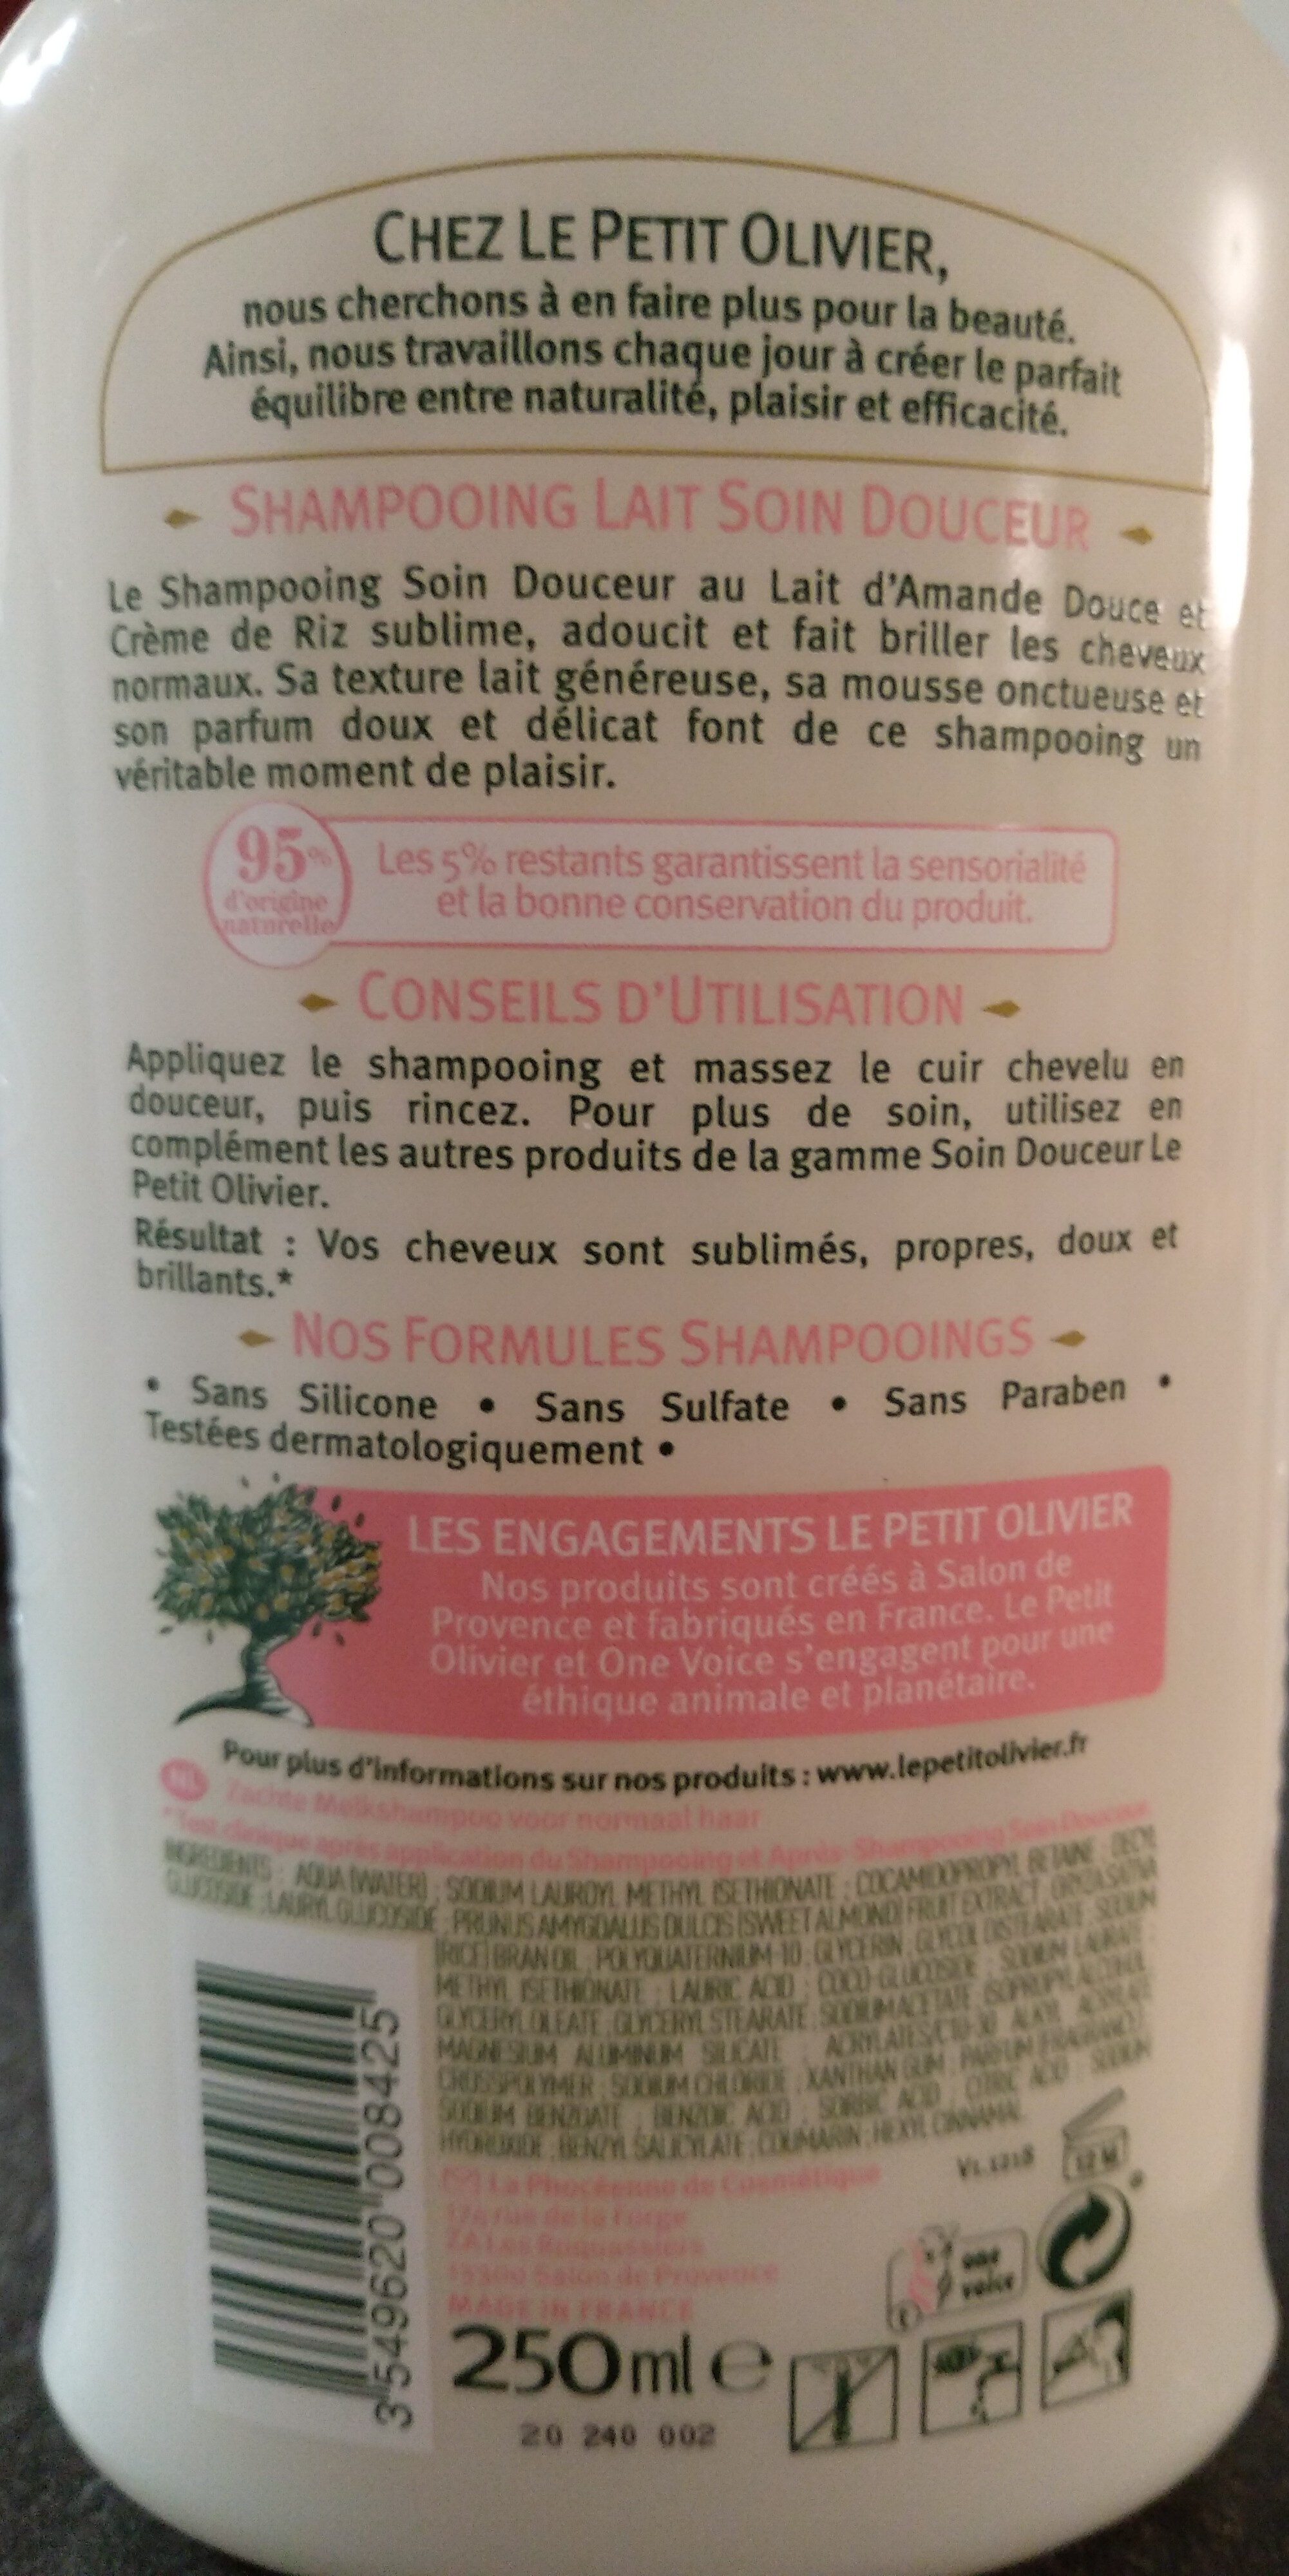 Shampoing Lait Soin Douceur - Product - fr